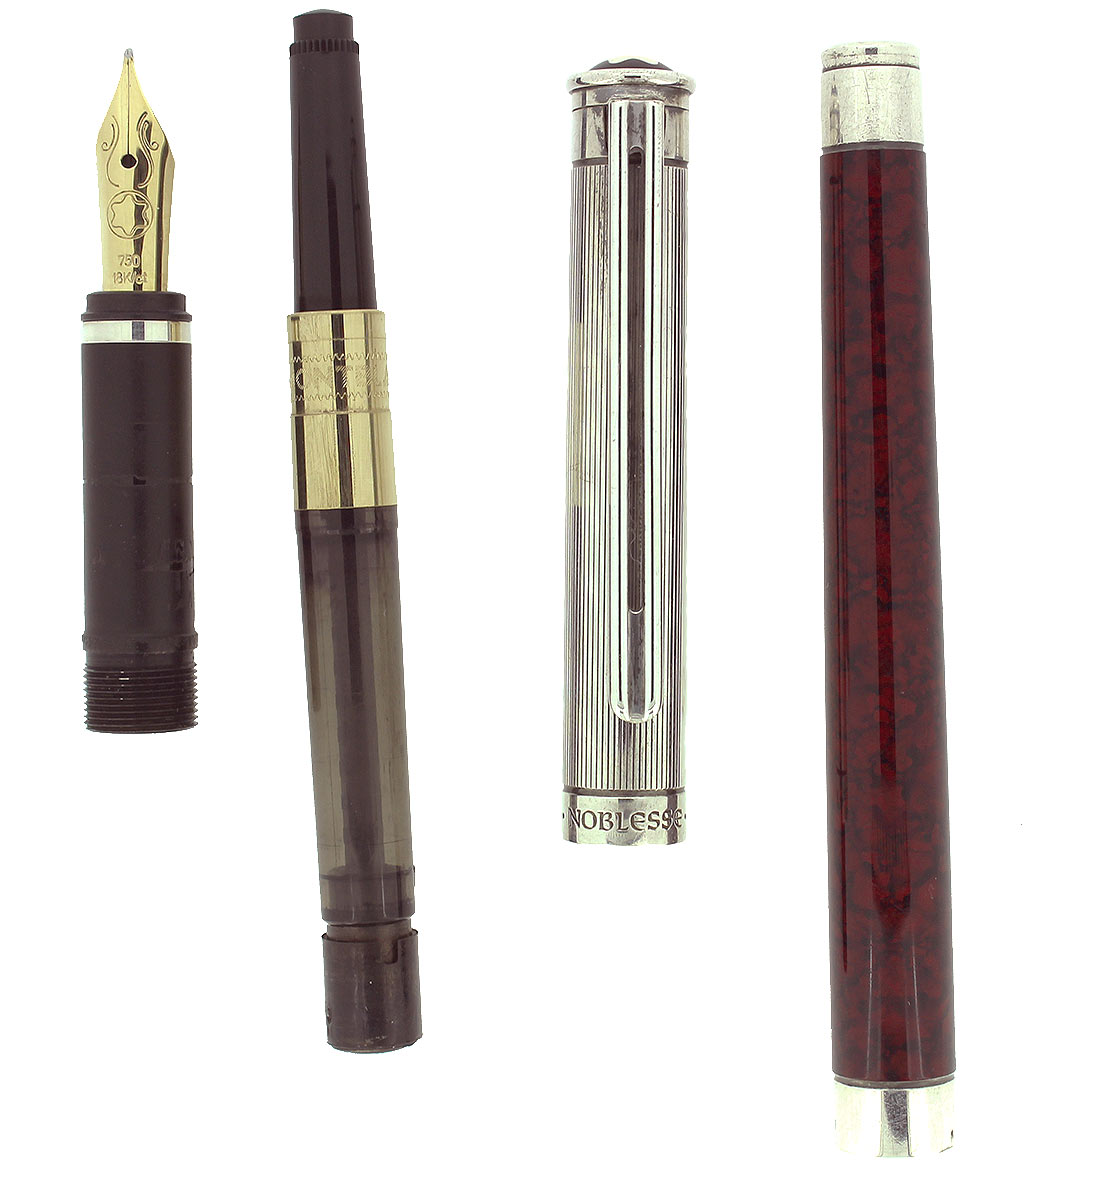 CIRCA 1990 MONTBLANC NOBLESSE TYPE IV RED MARBLED LACQUER 18K NIB FOUNTAIN PEN OFFERED BY ANTIQUE DIGGER